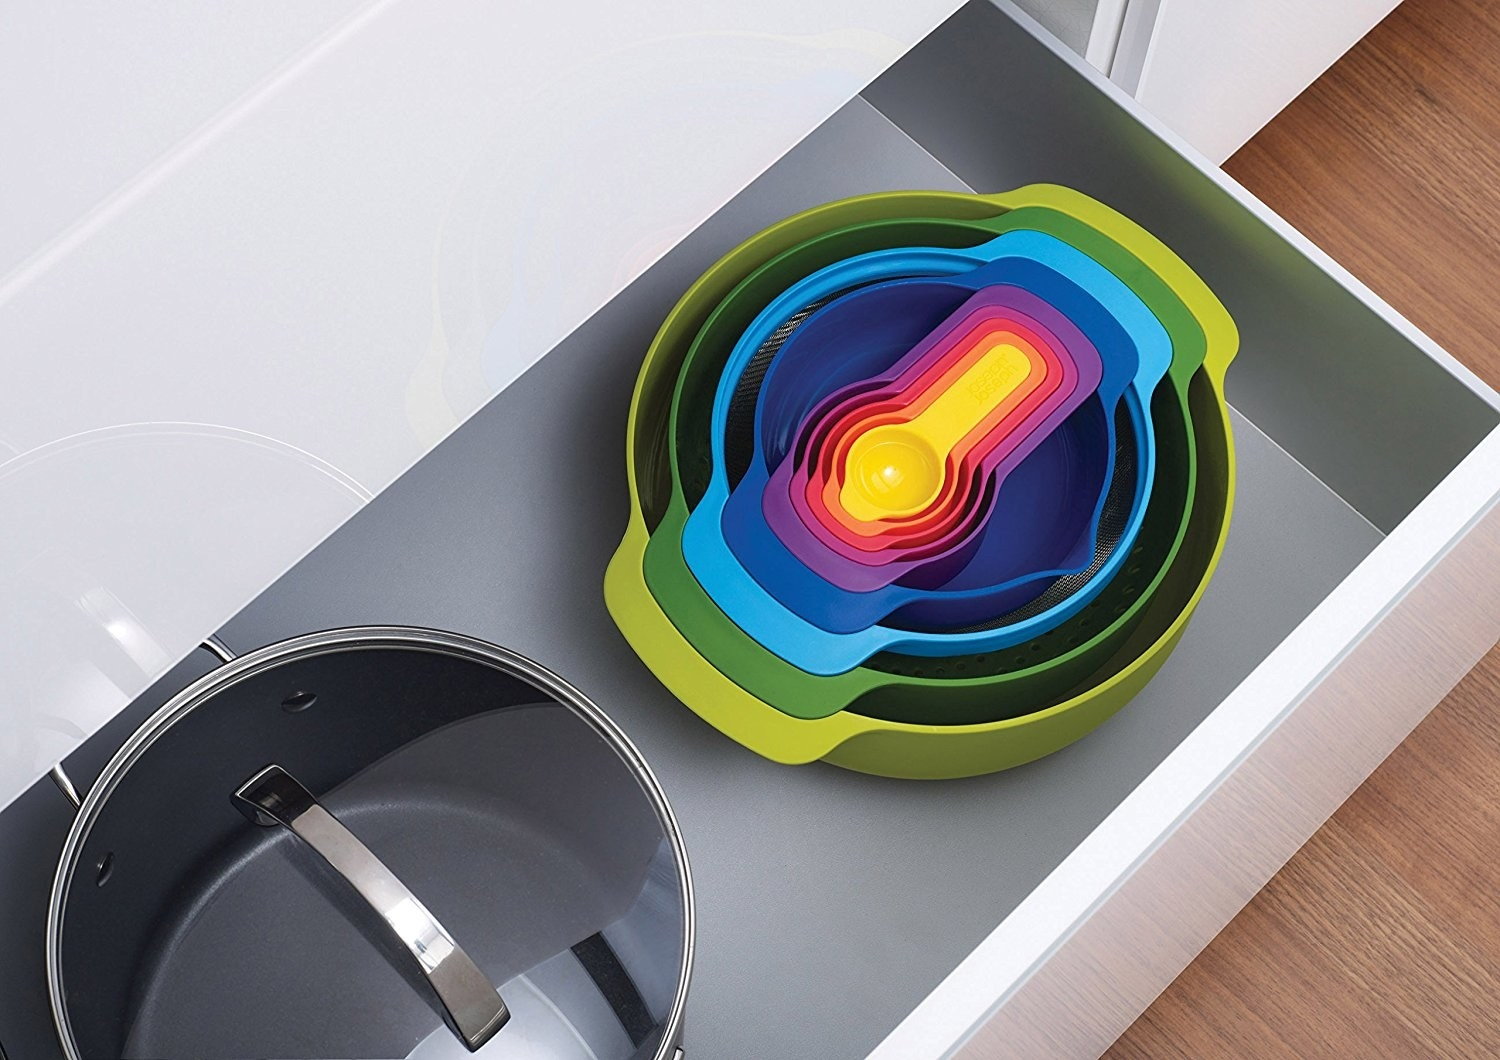 An open drawer showing the rainbow set of bowls and measuring cups nested together in one stack